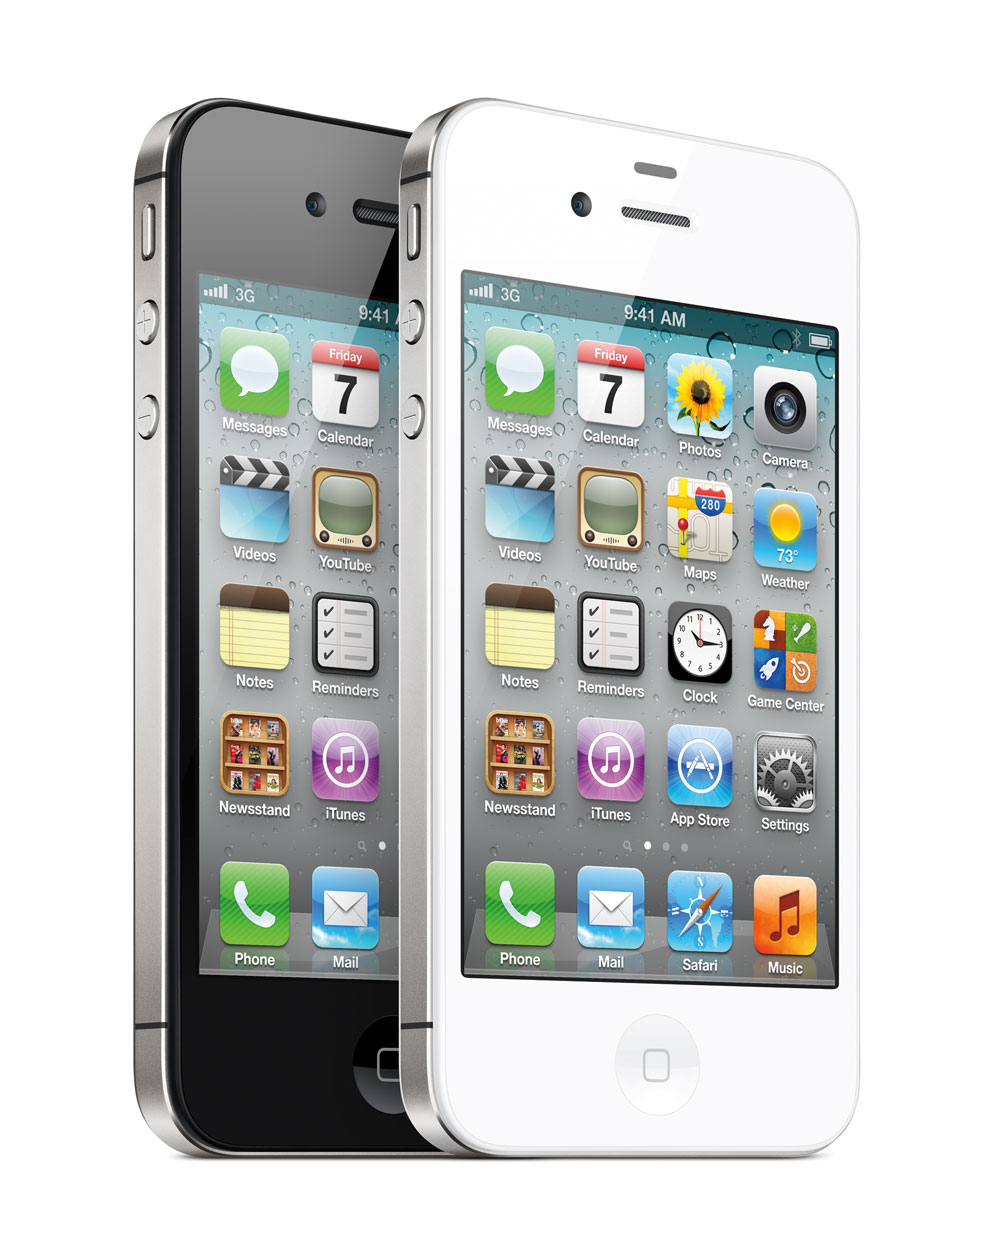 iphone4s_34fl-black-34fl-white_homescreen_pr-print